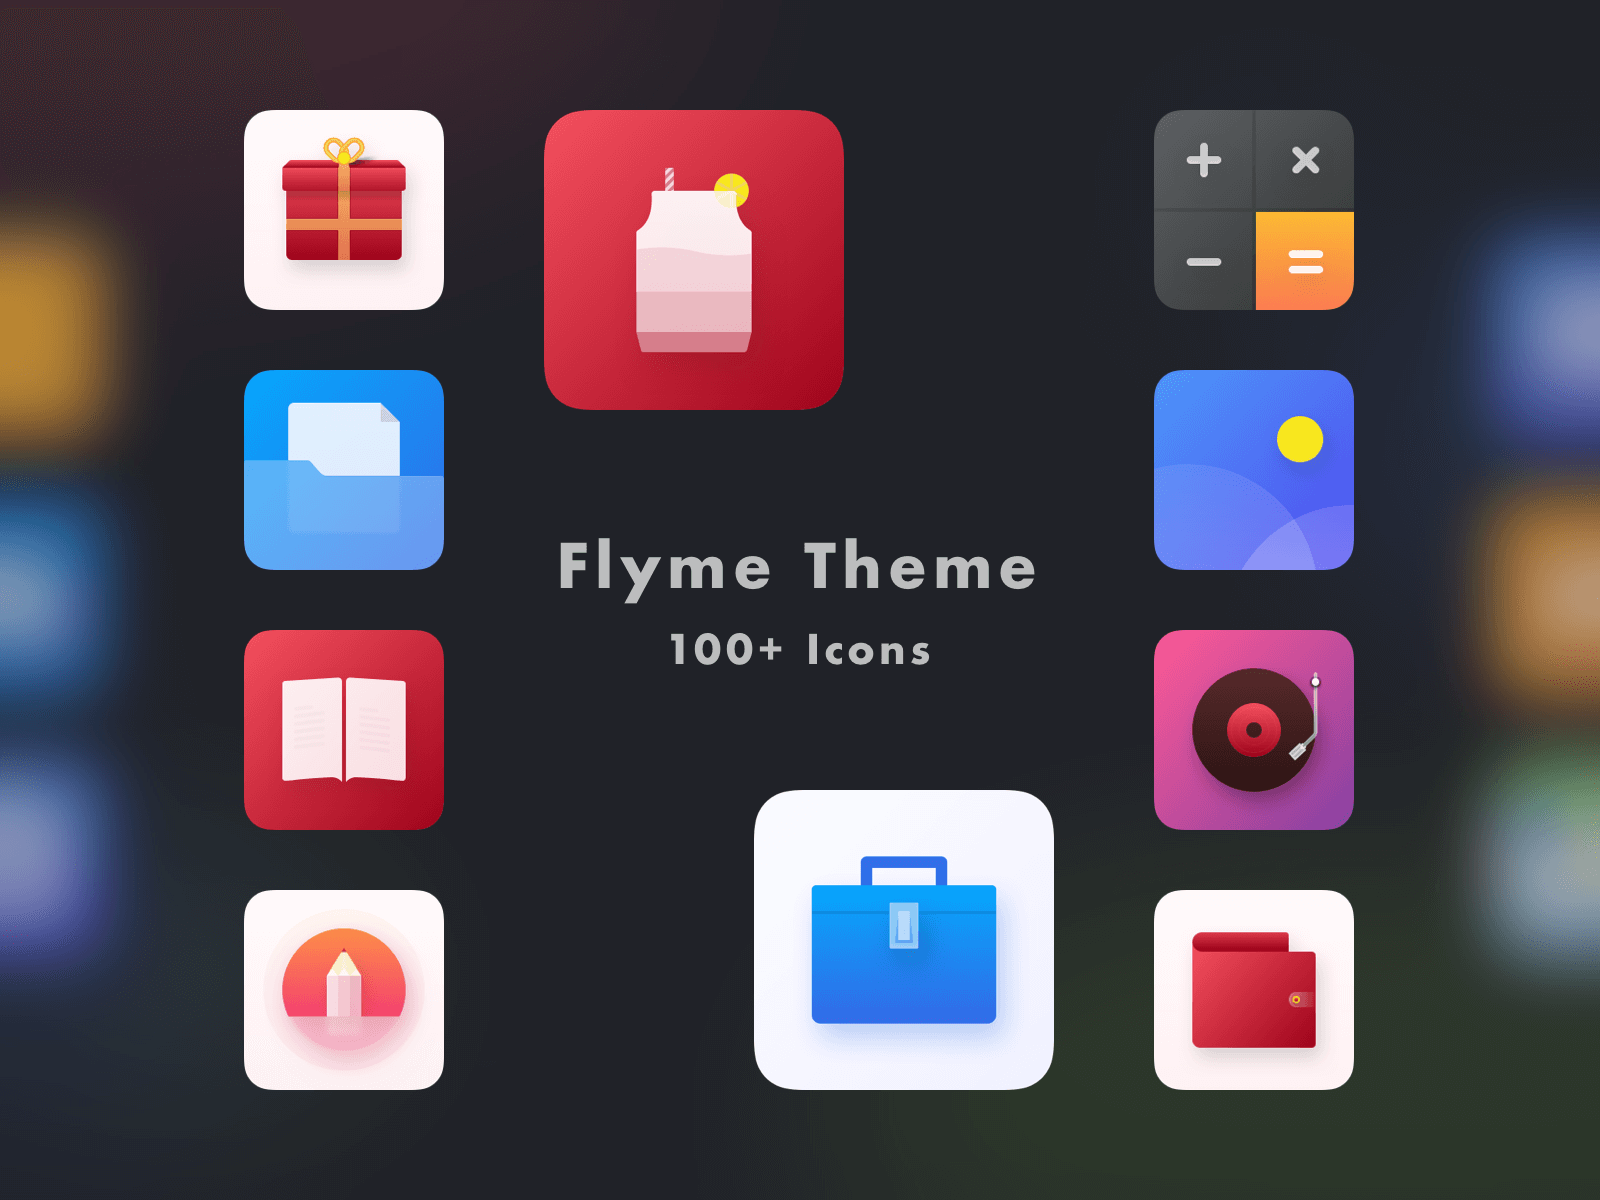 Flyme Theme Icons